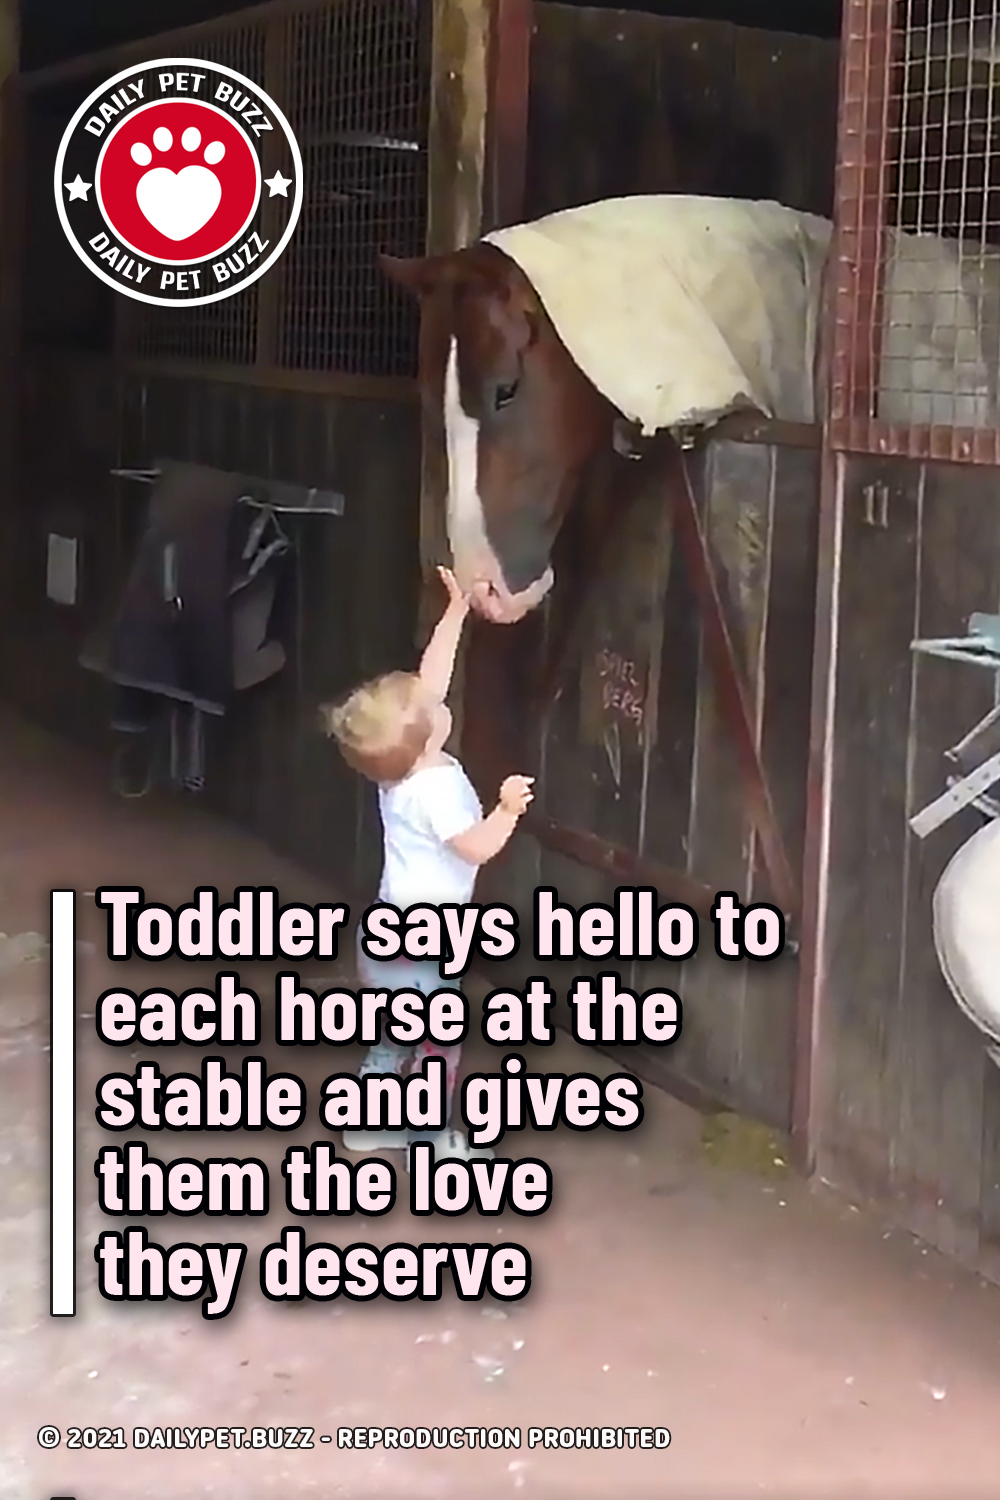 Toddler says hello to each horse at the stable and gives them the love they deserve